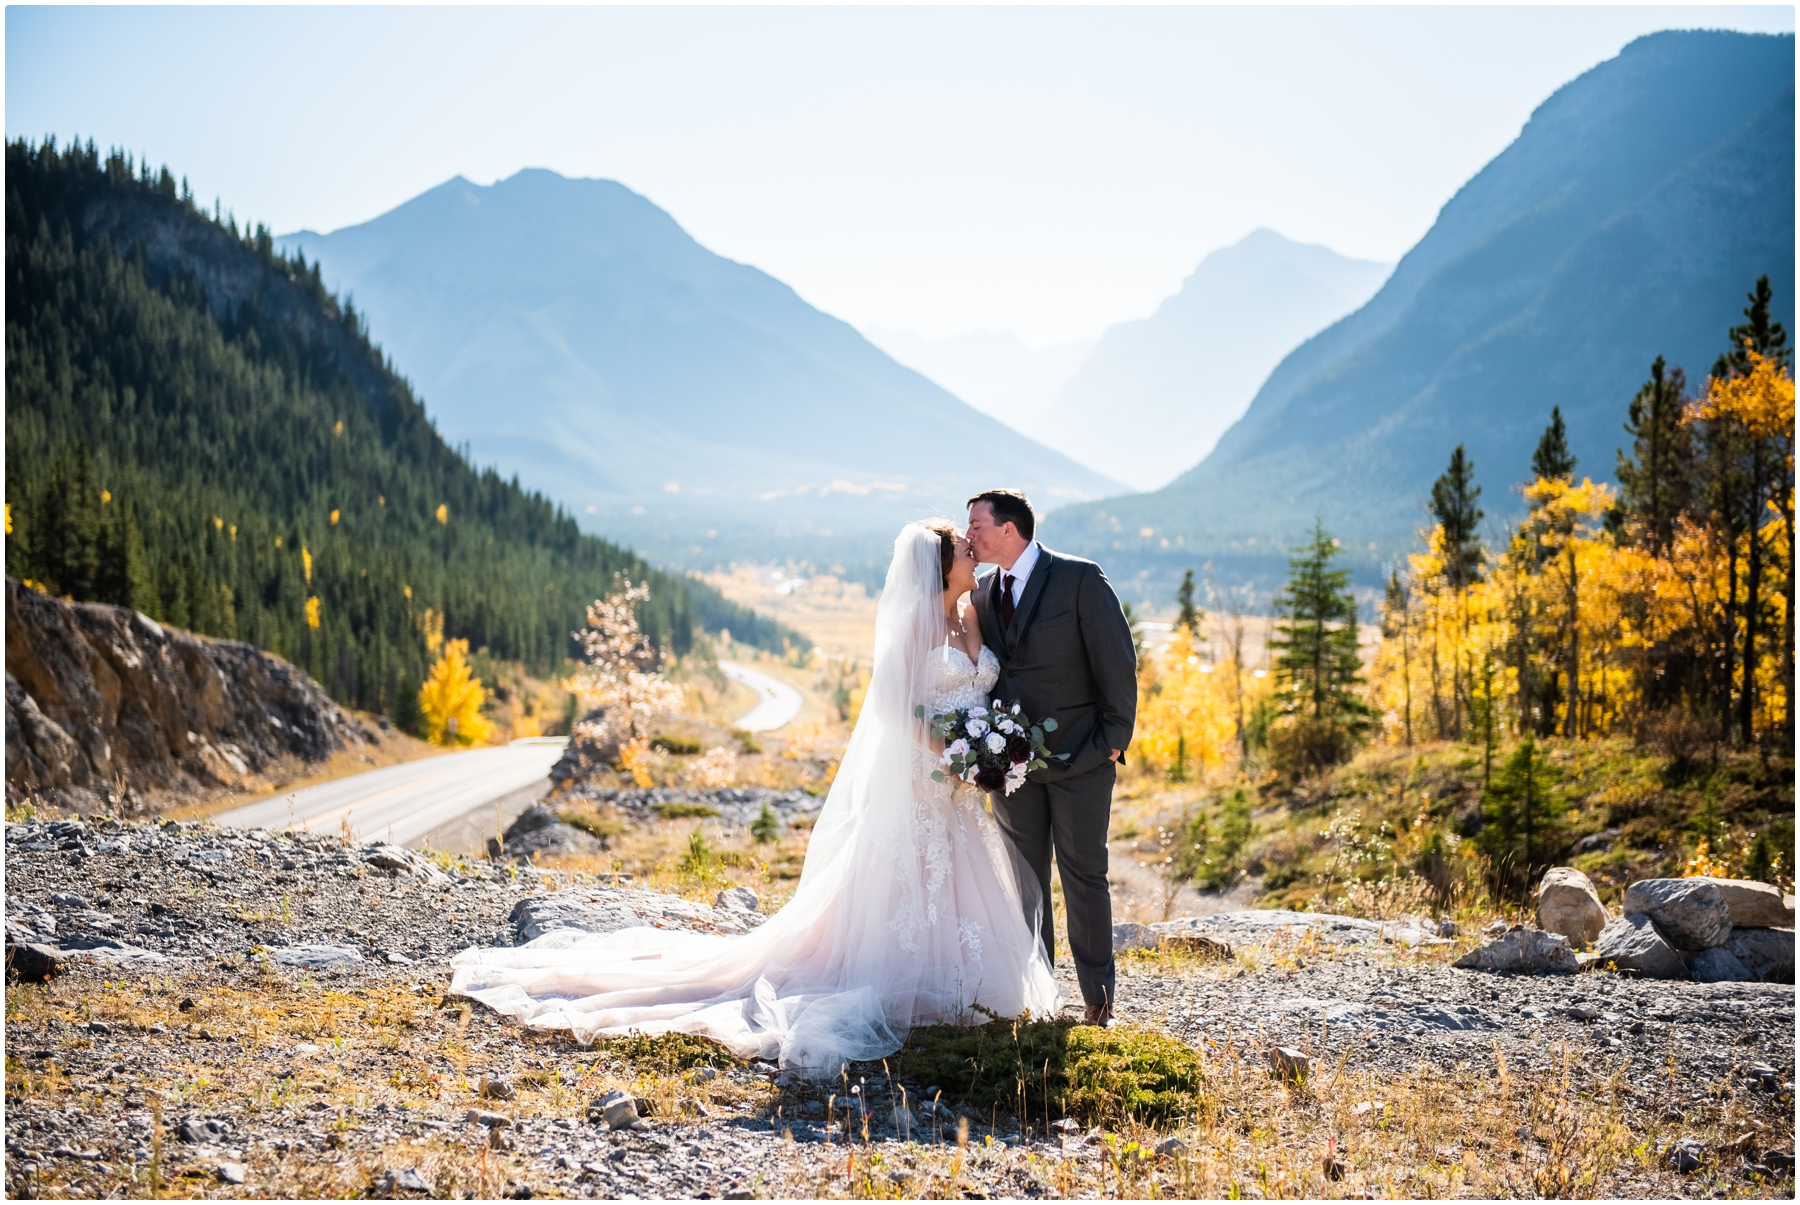 Canmore Wedding Photographer- Rocky Mountain Intimate Elopement Photographers